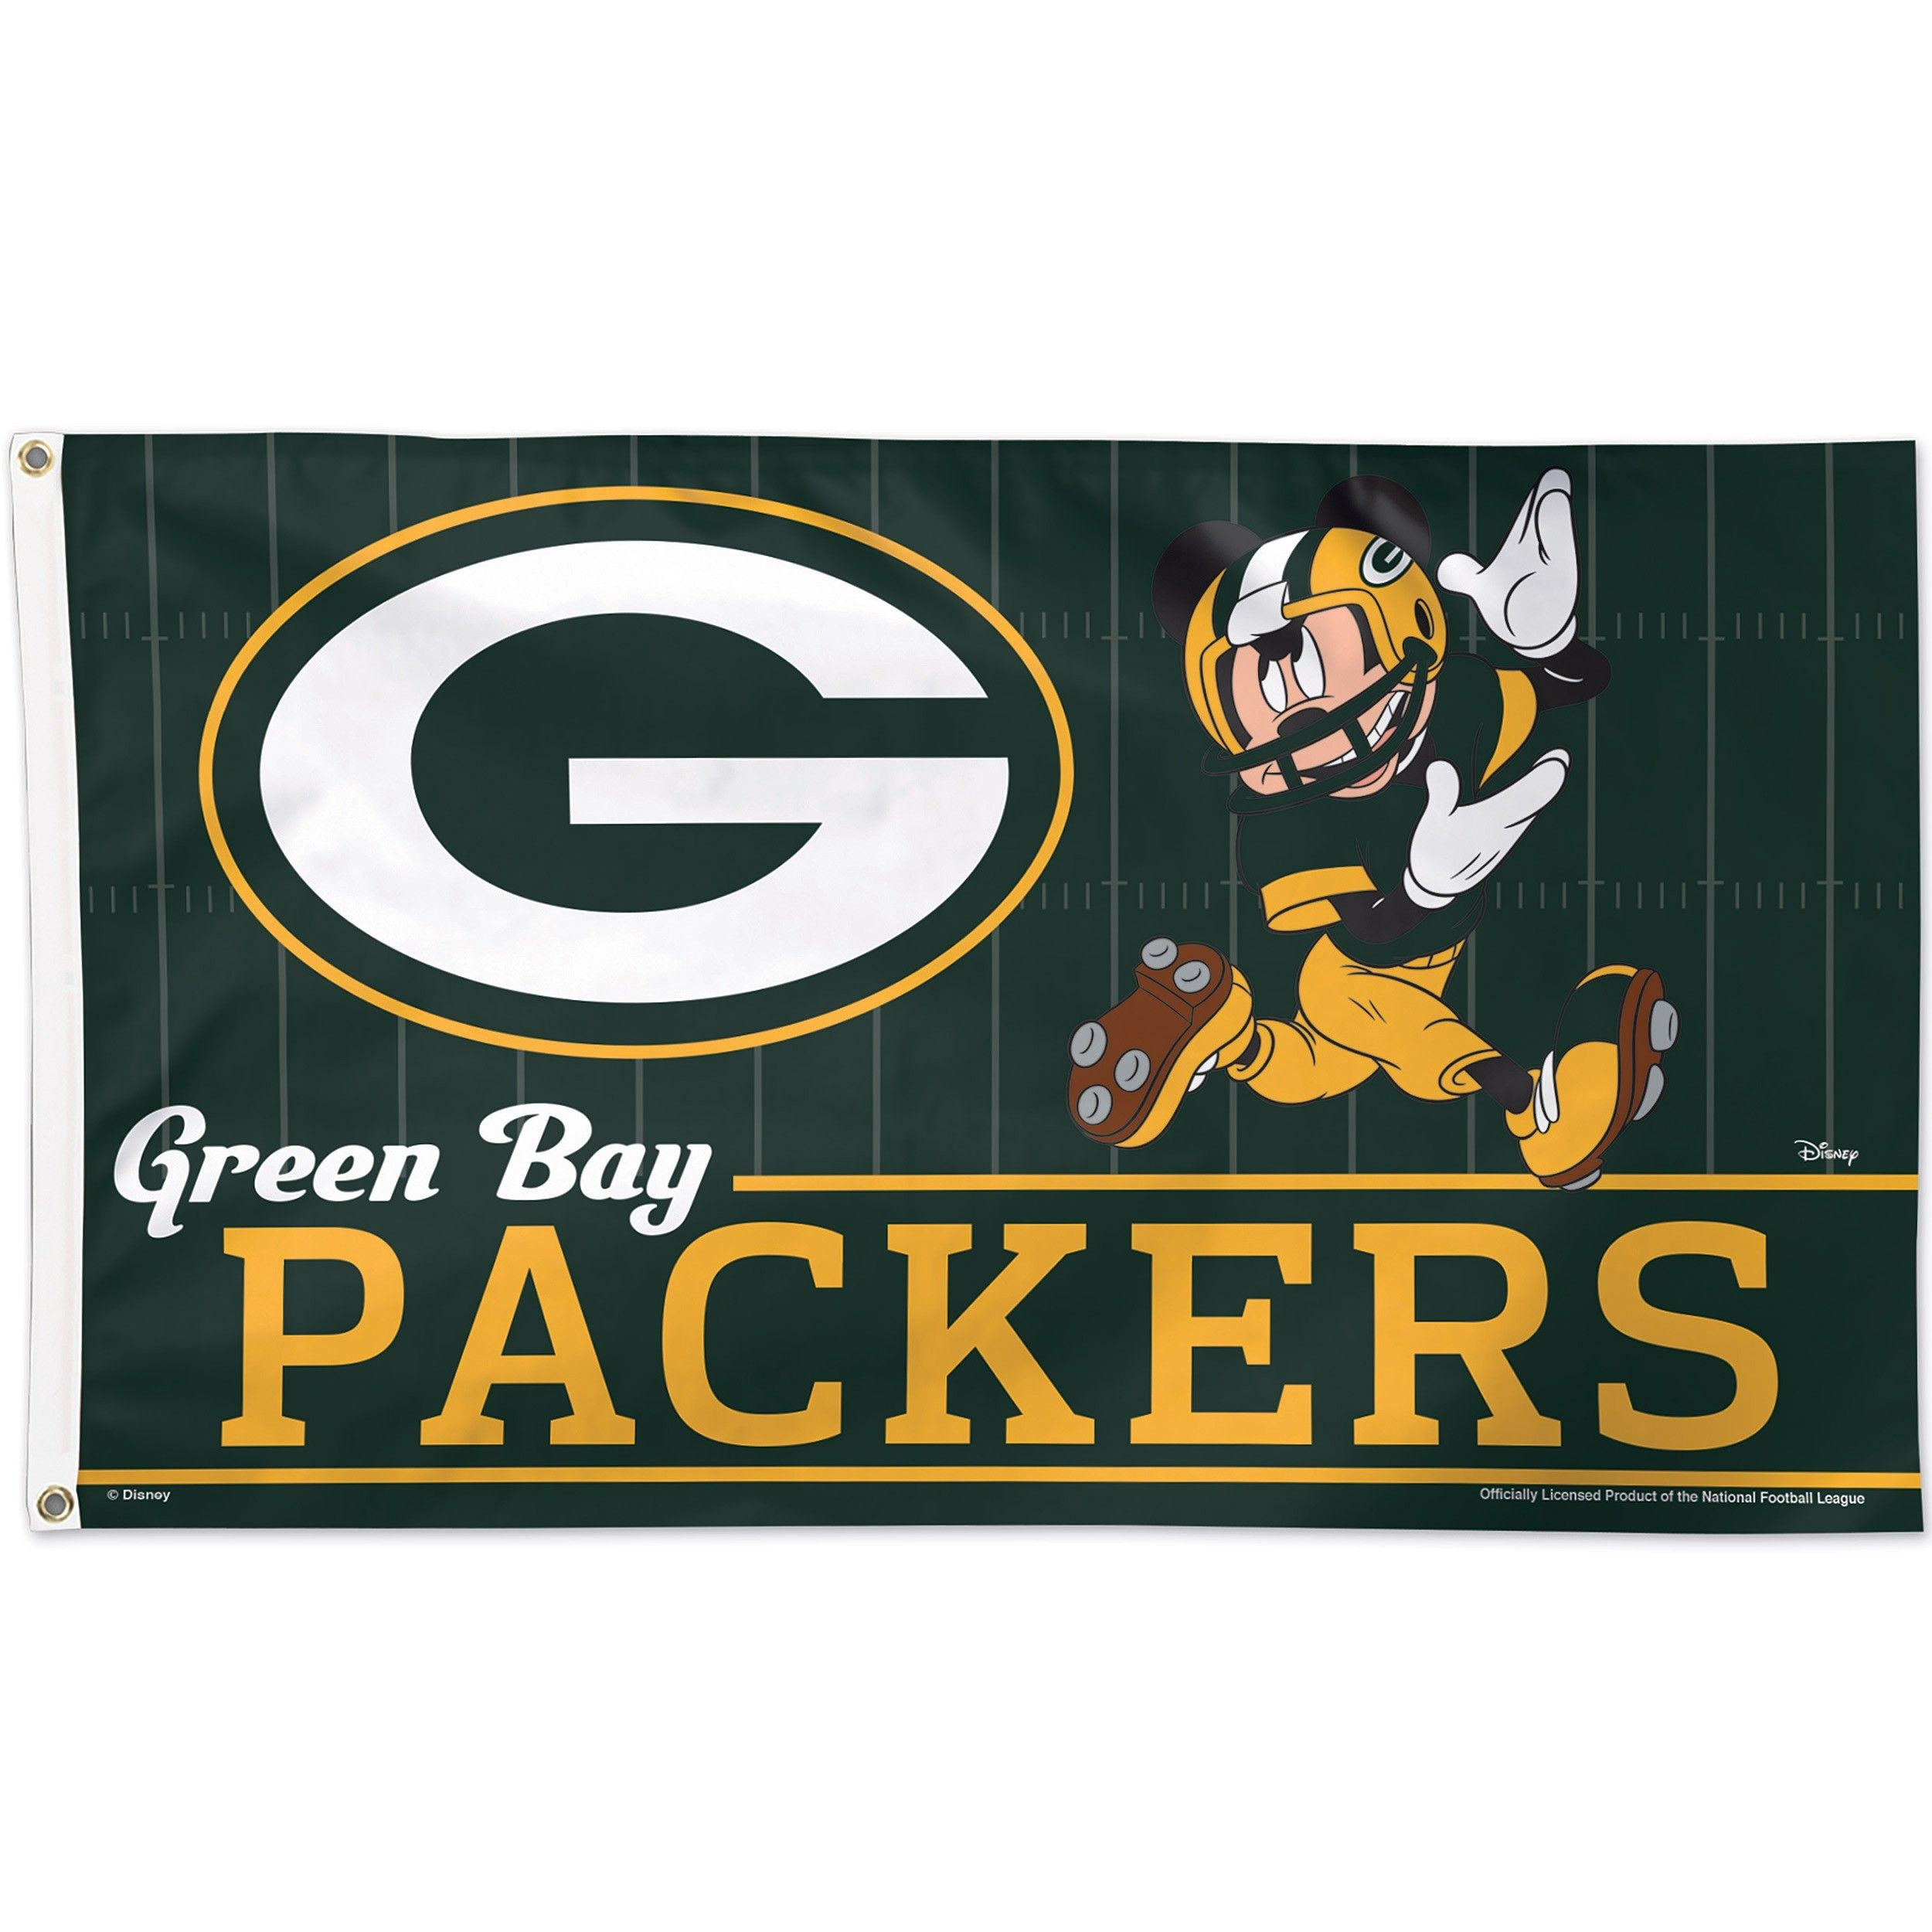 Packers Mickey Mouse 3 X 5 Flag Green Bay Packers Logo Green Bay Green Bay Packers